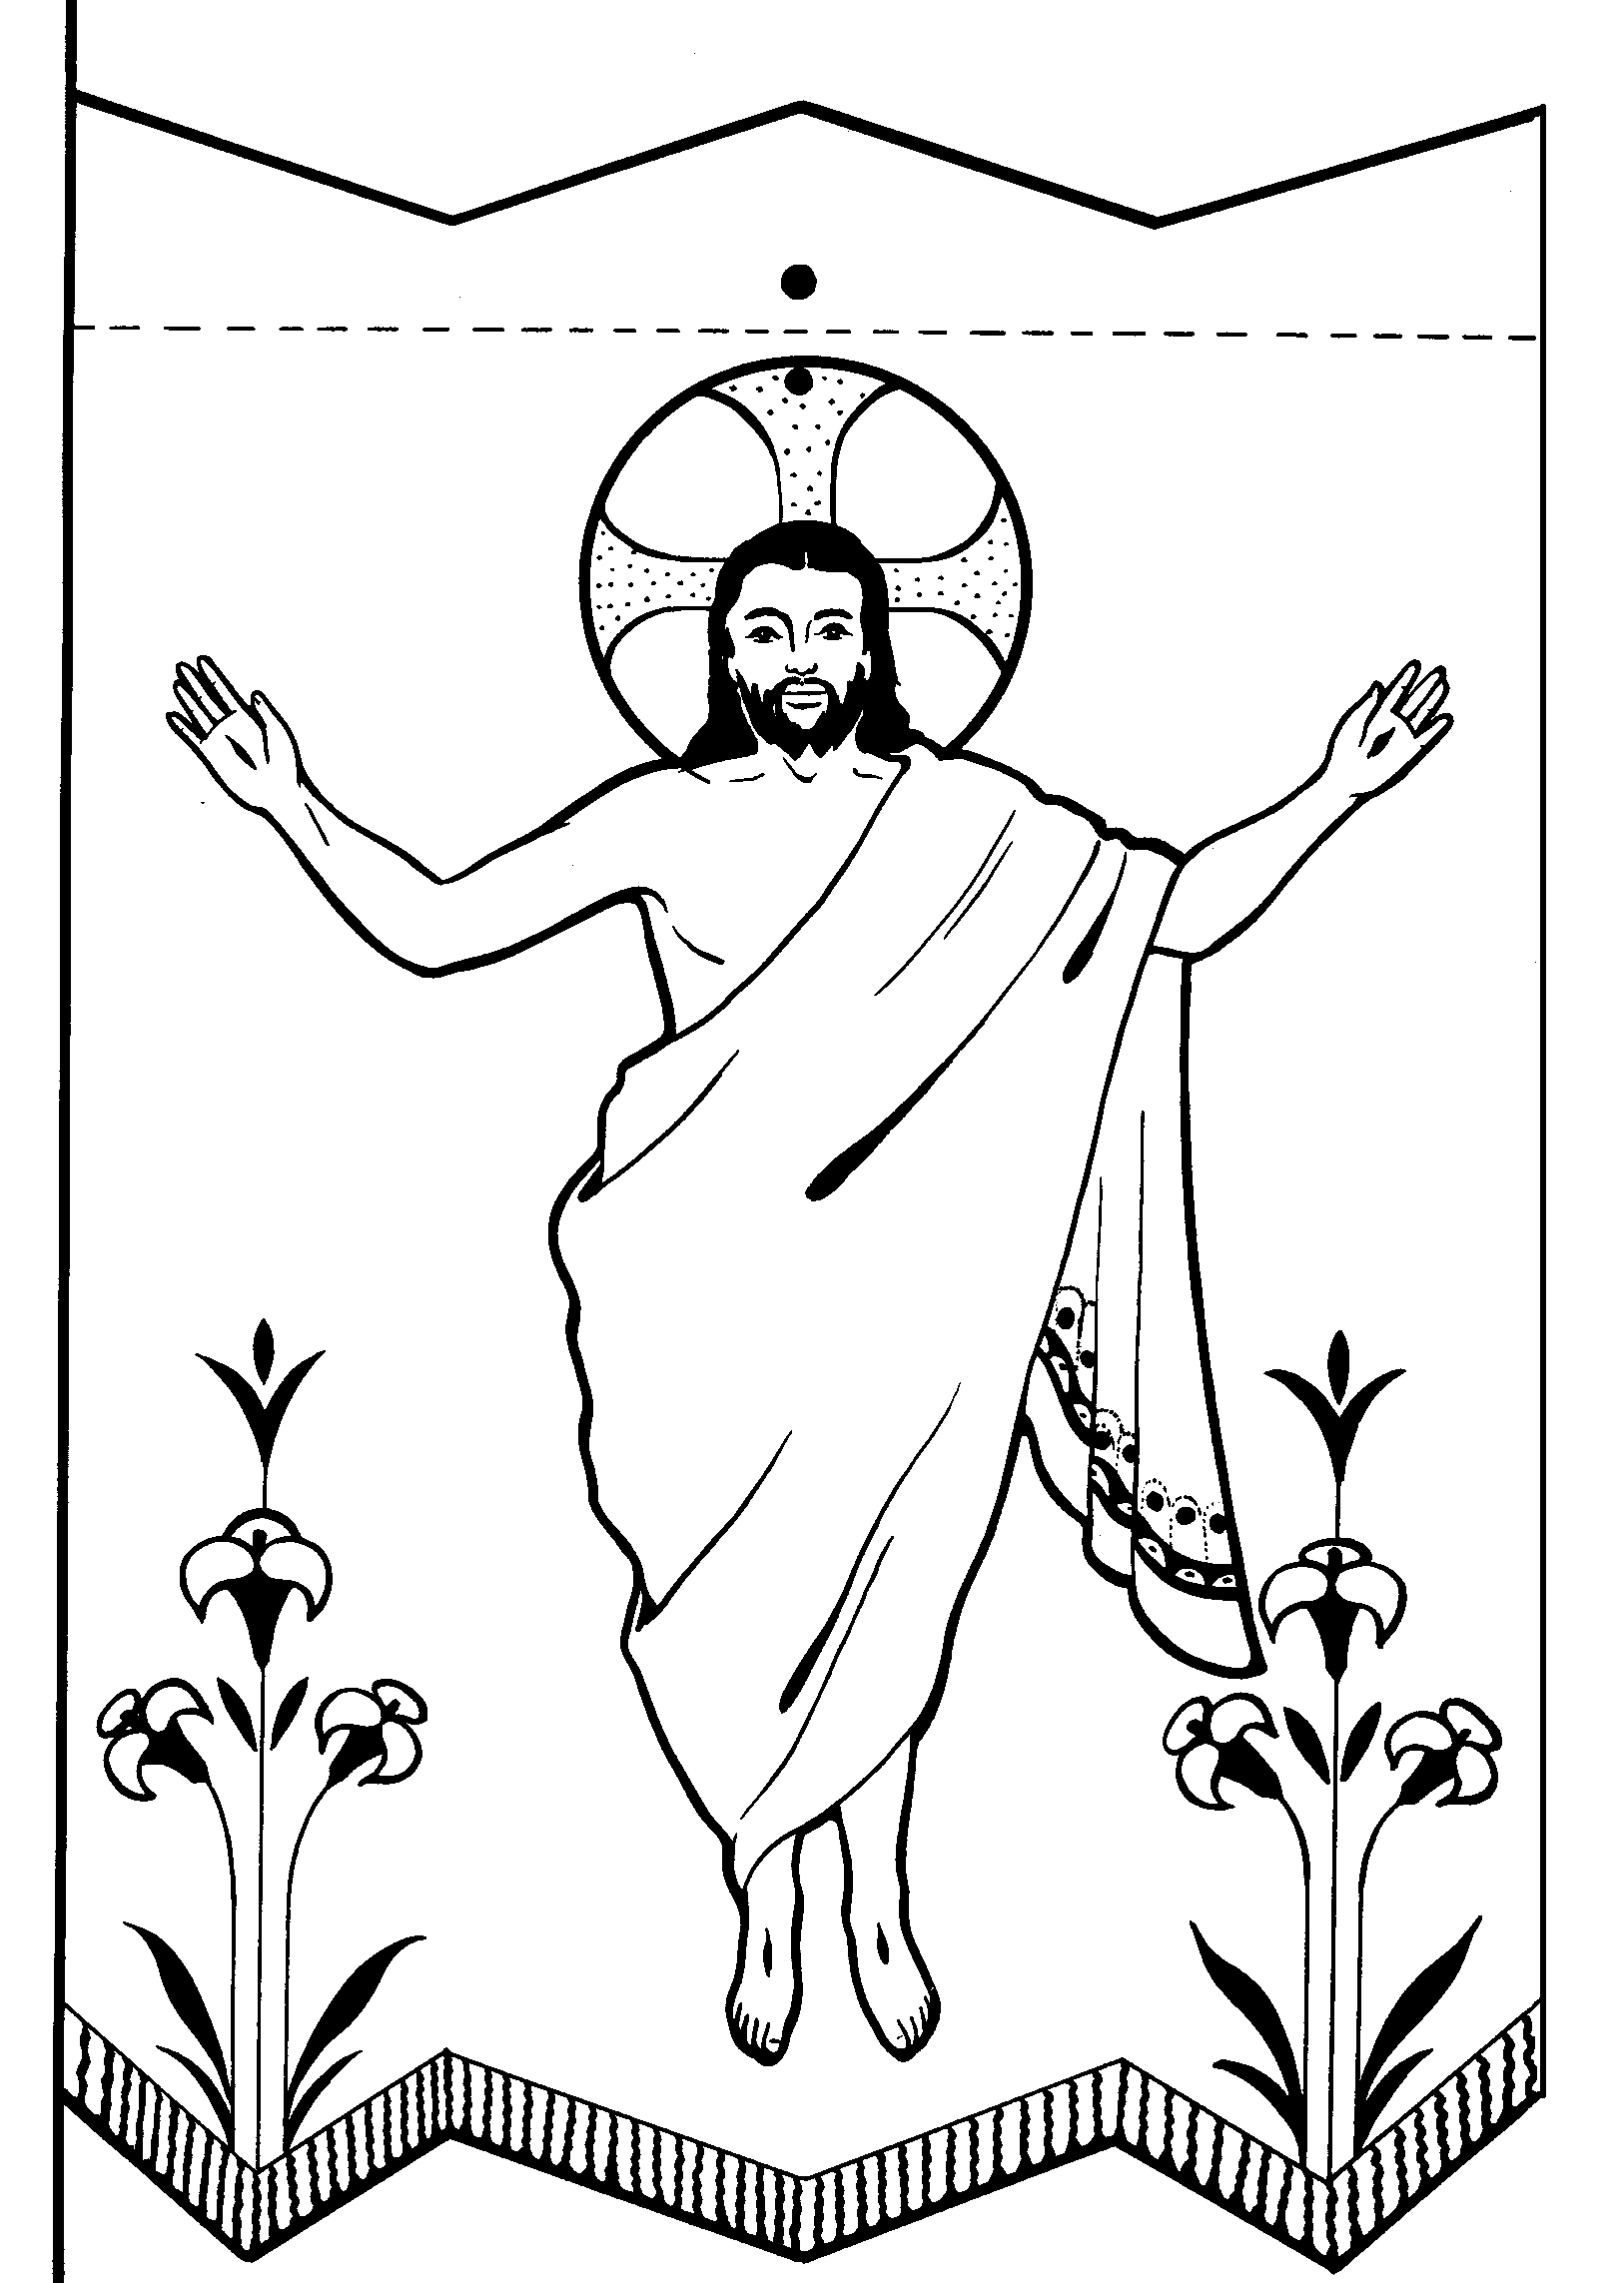 alleluia coloring page photo - 1